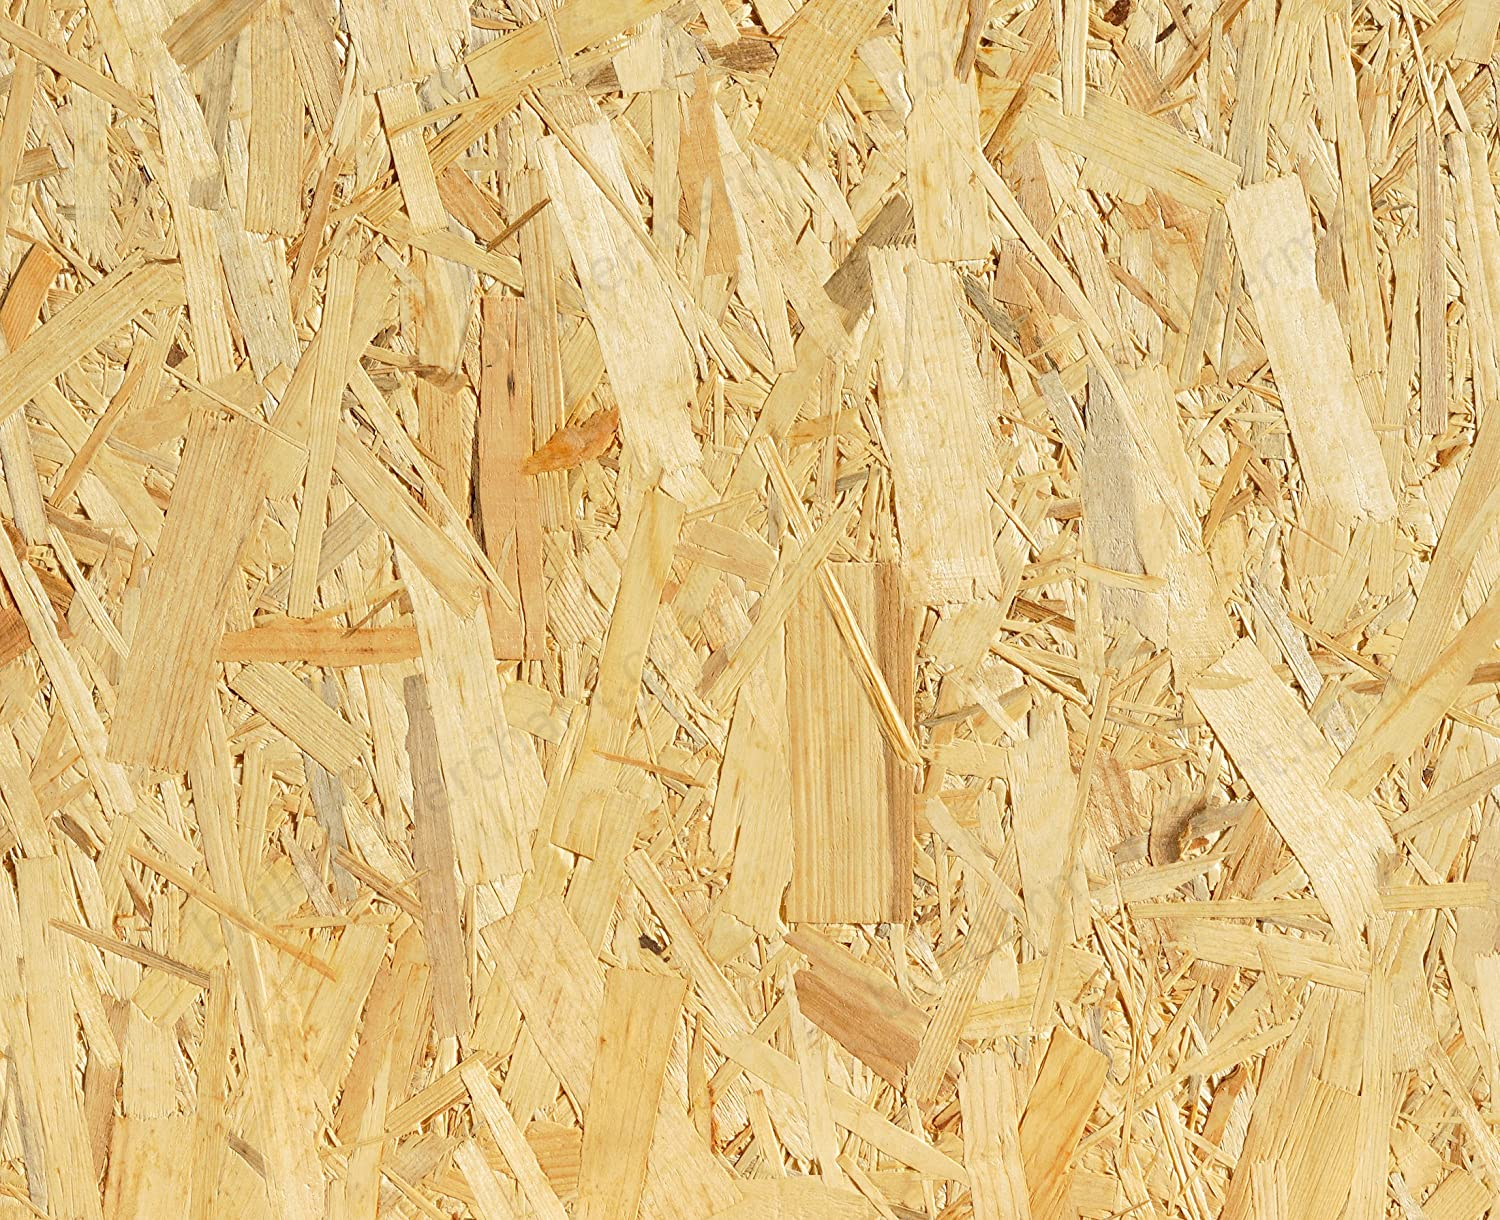 610mm x 610mm x 2ft Builder Merchant OSB//3 Board 9mm 610x300mm 2